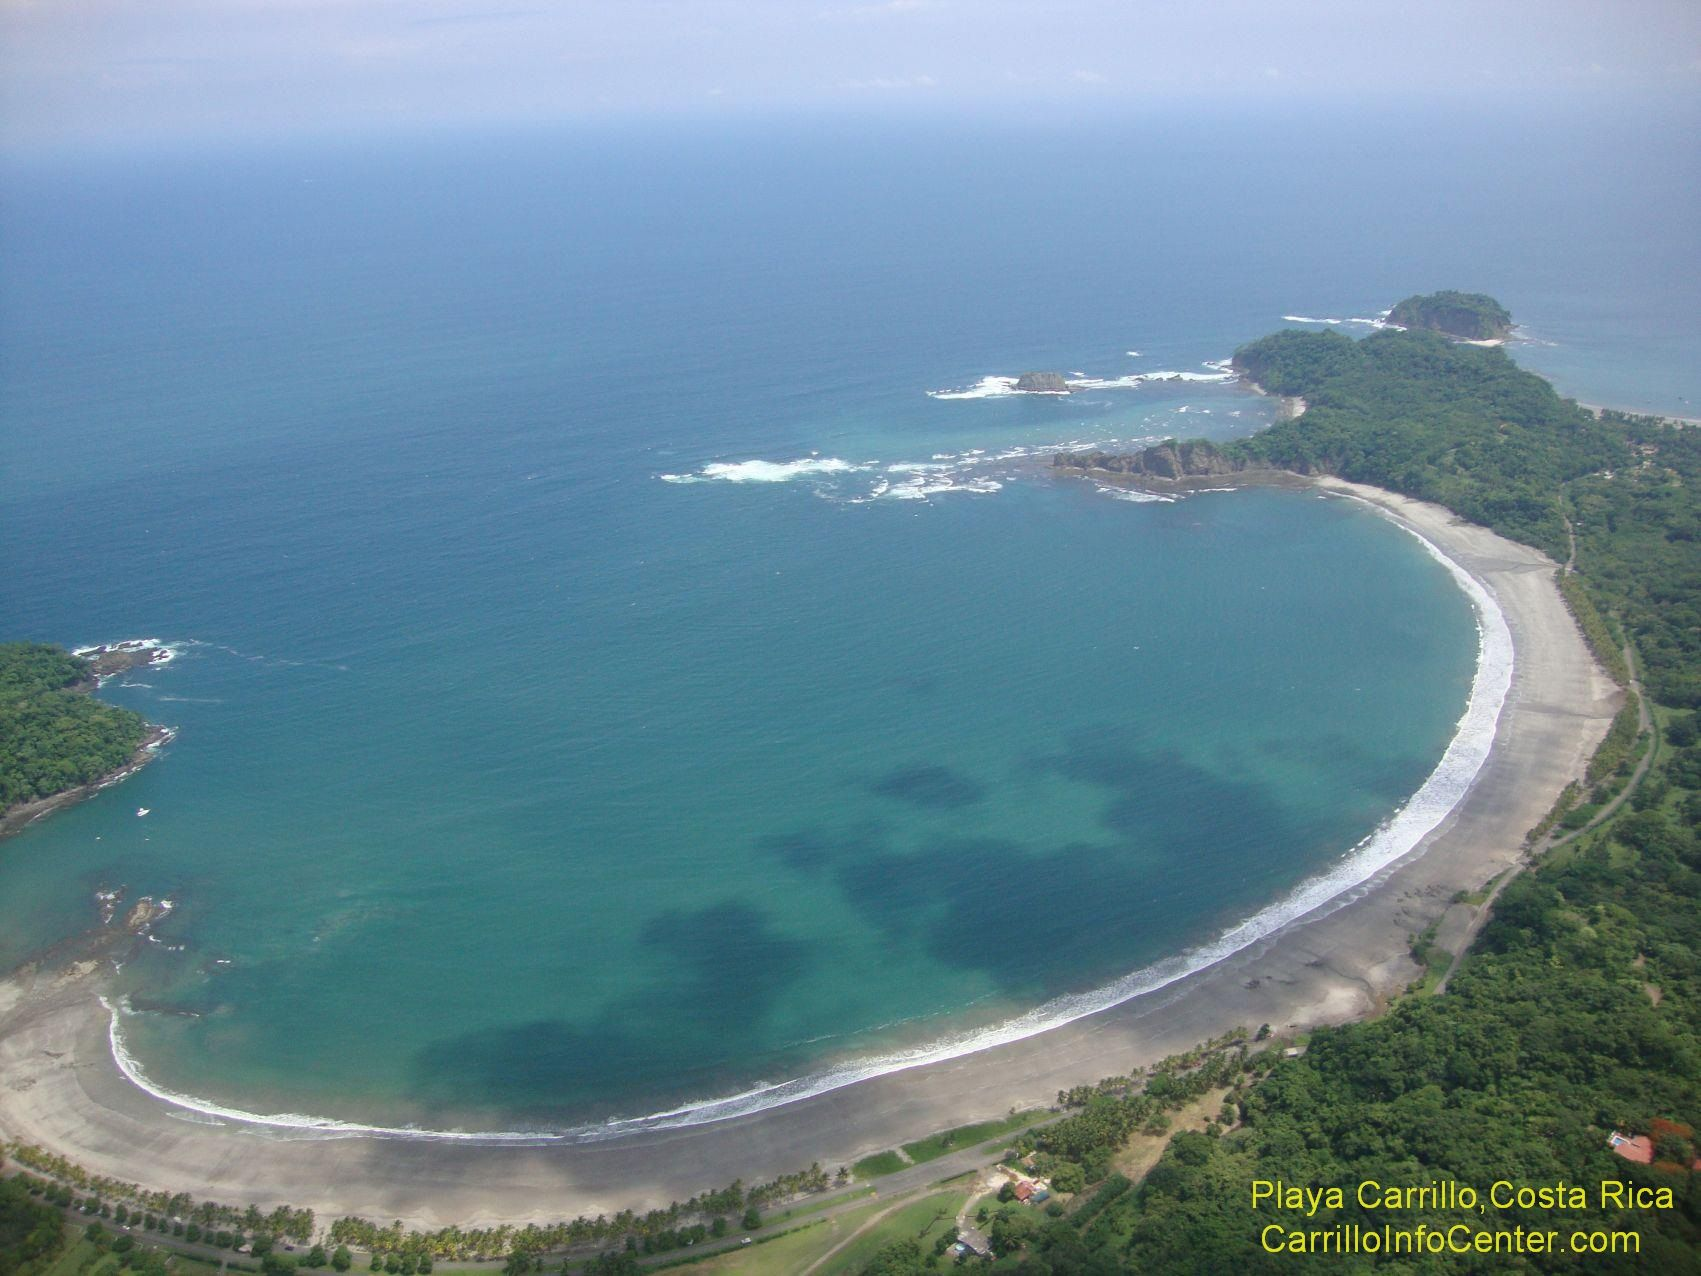 The Bay Of Carrillo From Air Perfect Beach For Your Holidays We Can Help You With Questions And Plans